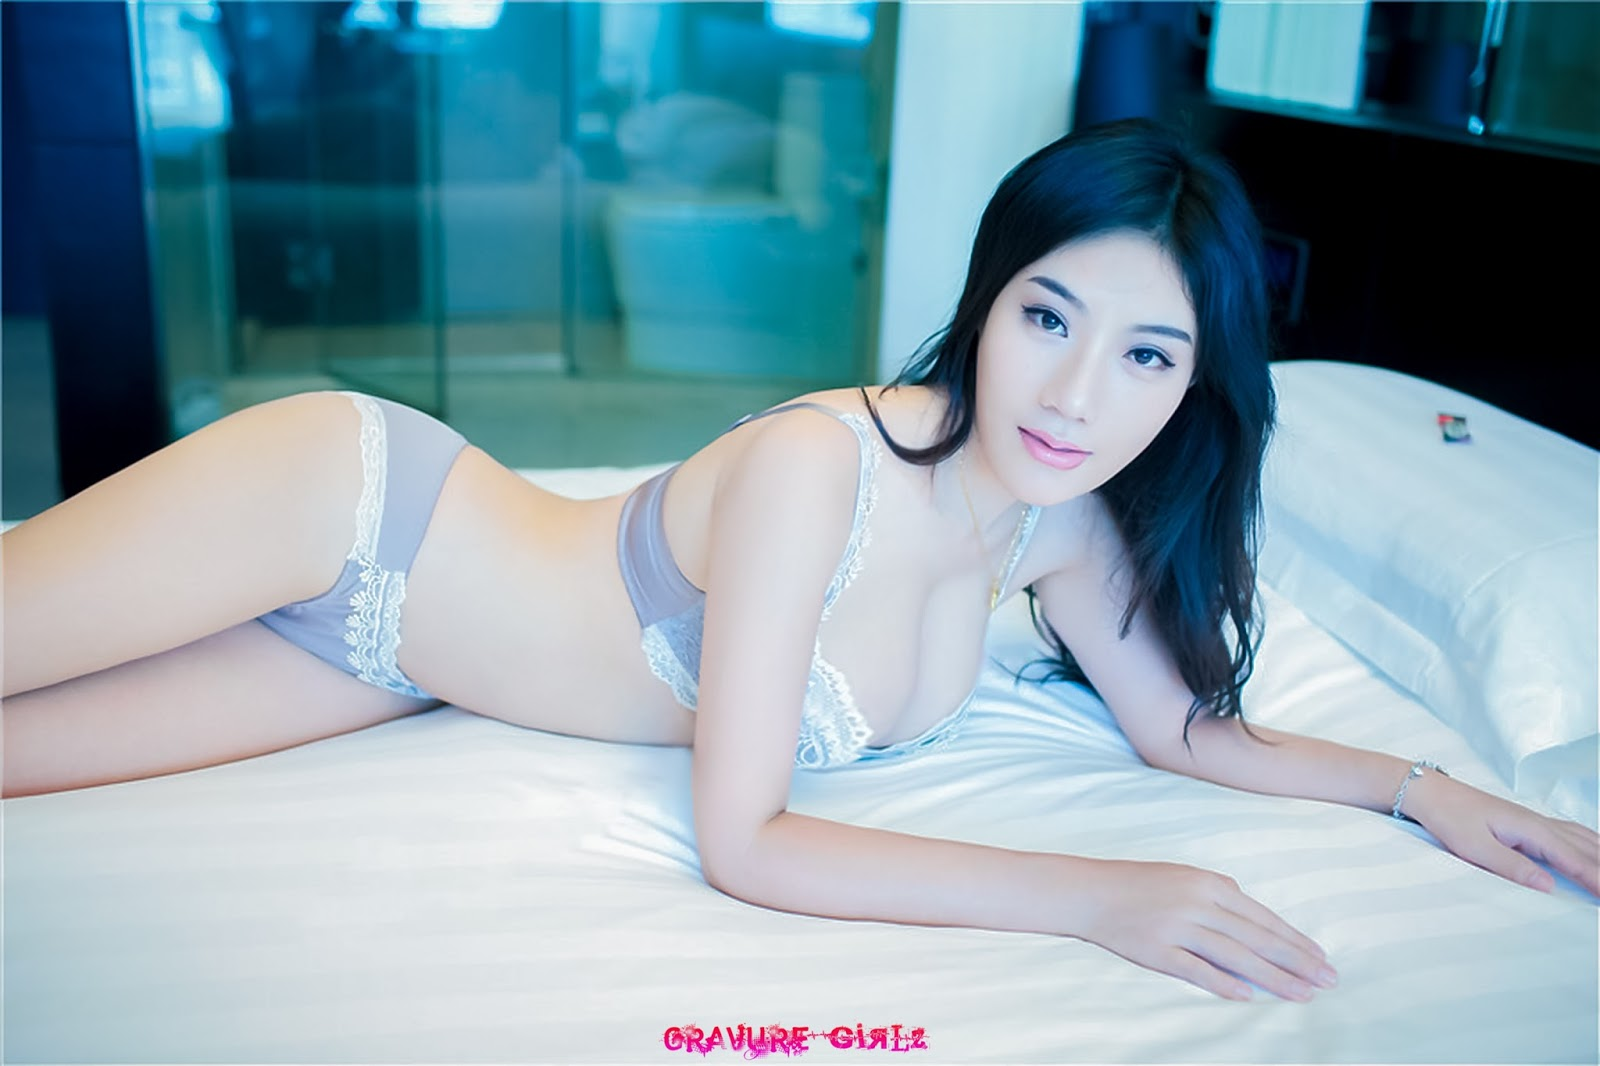 Pretty Asian Nude Model Moyu 莫雨 Tempting Maid Naked With Pink Nipples